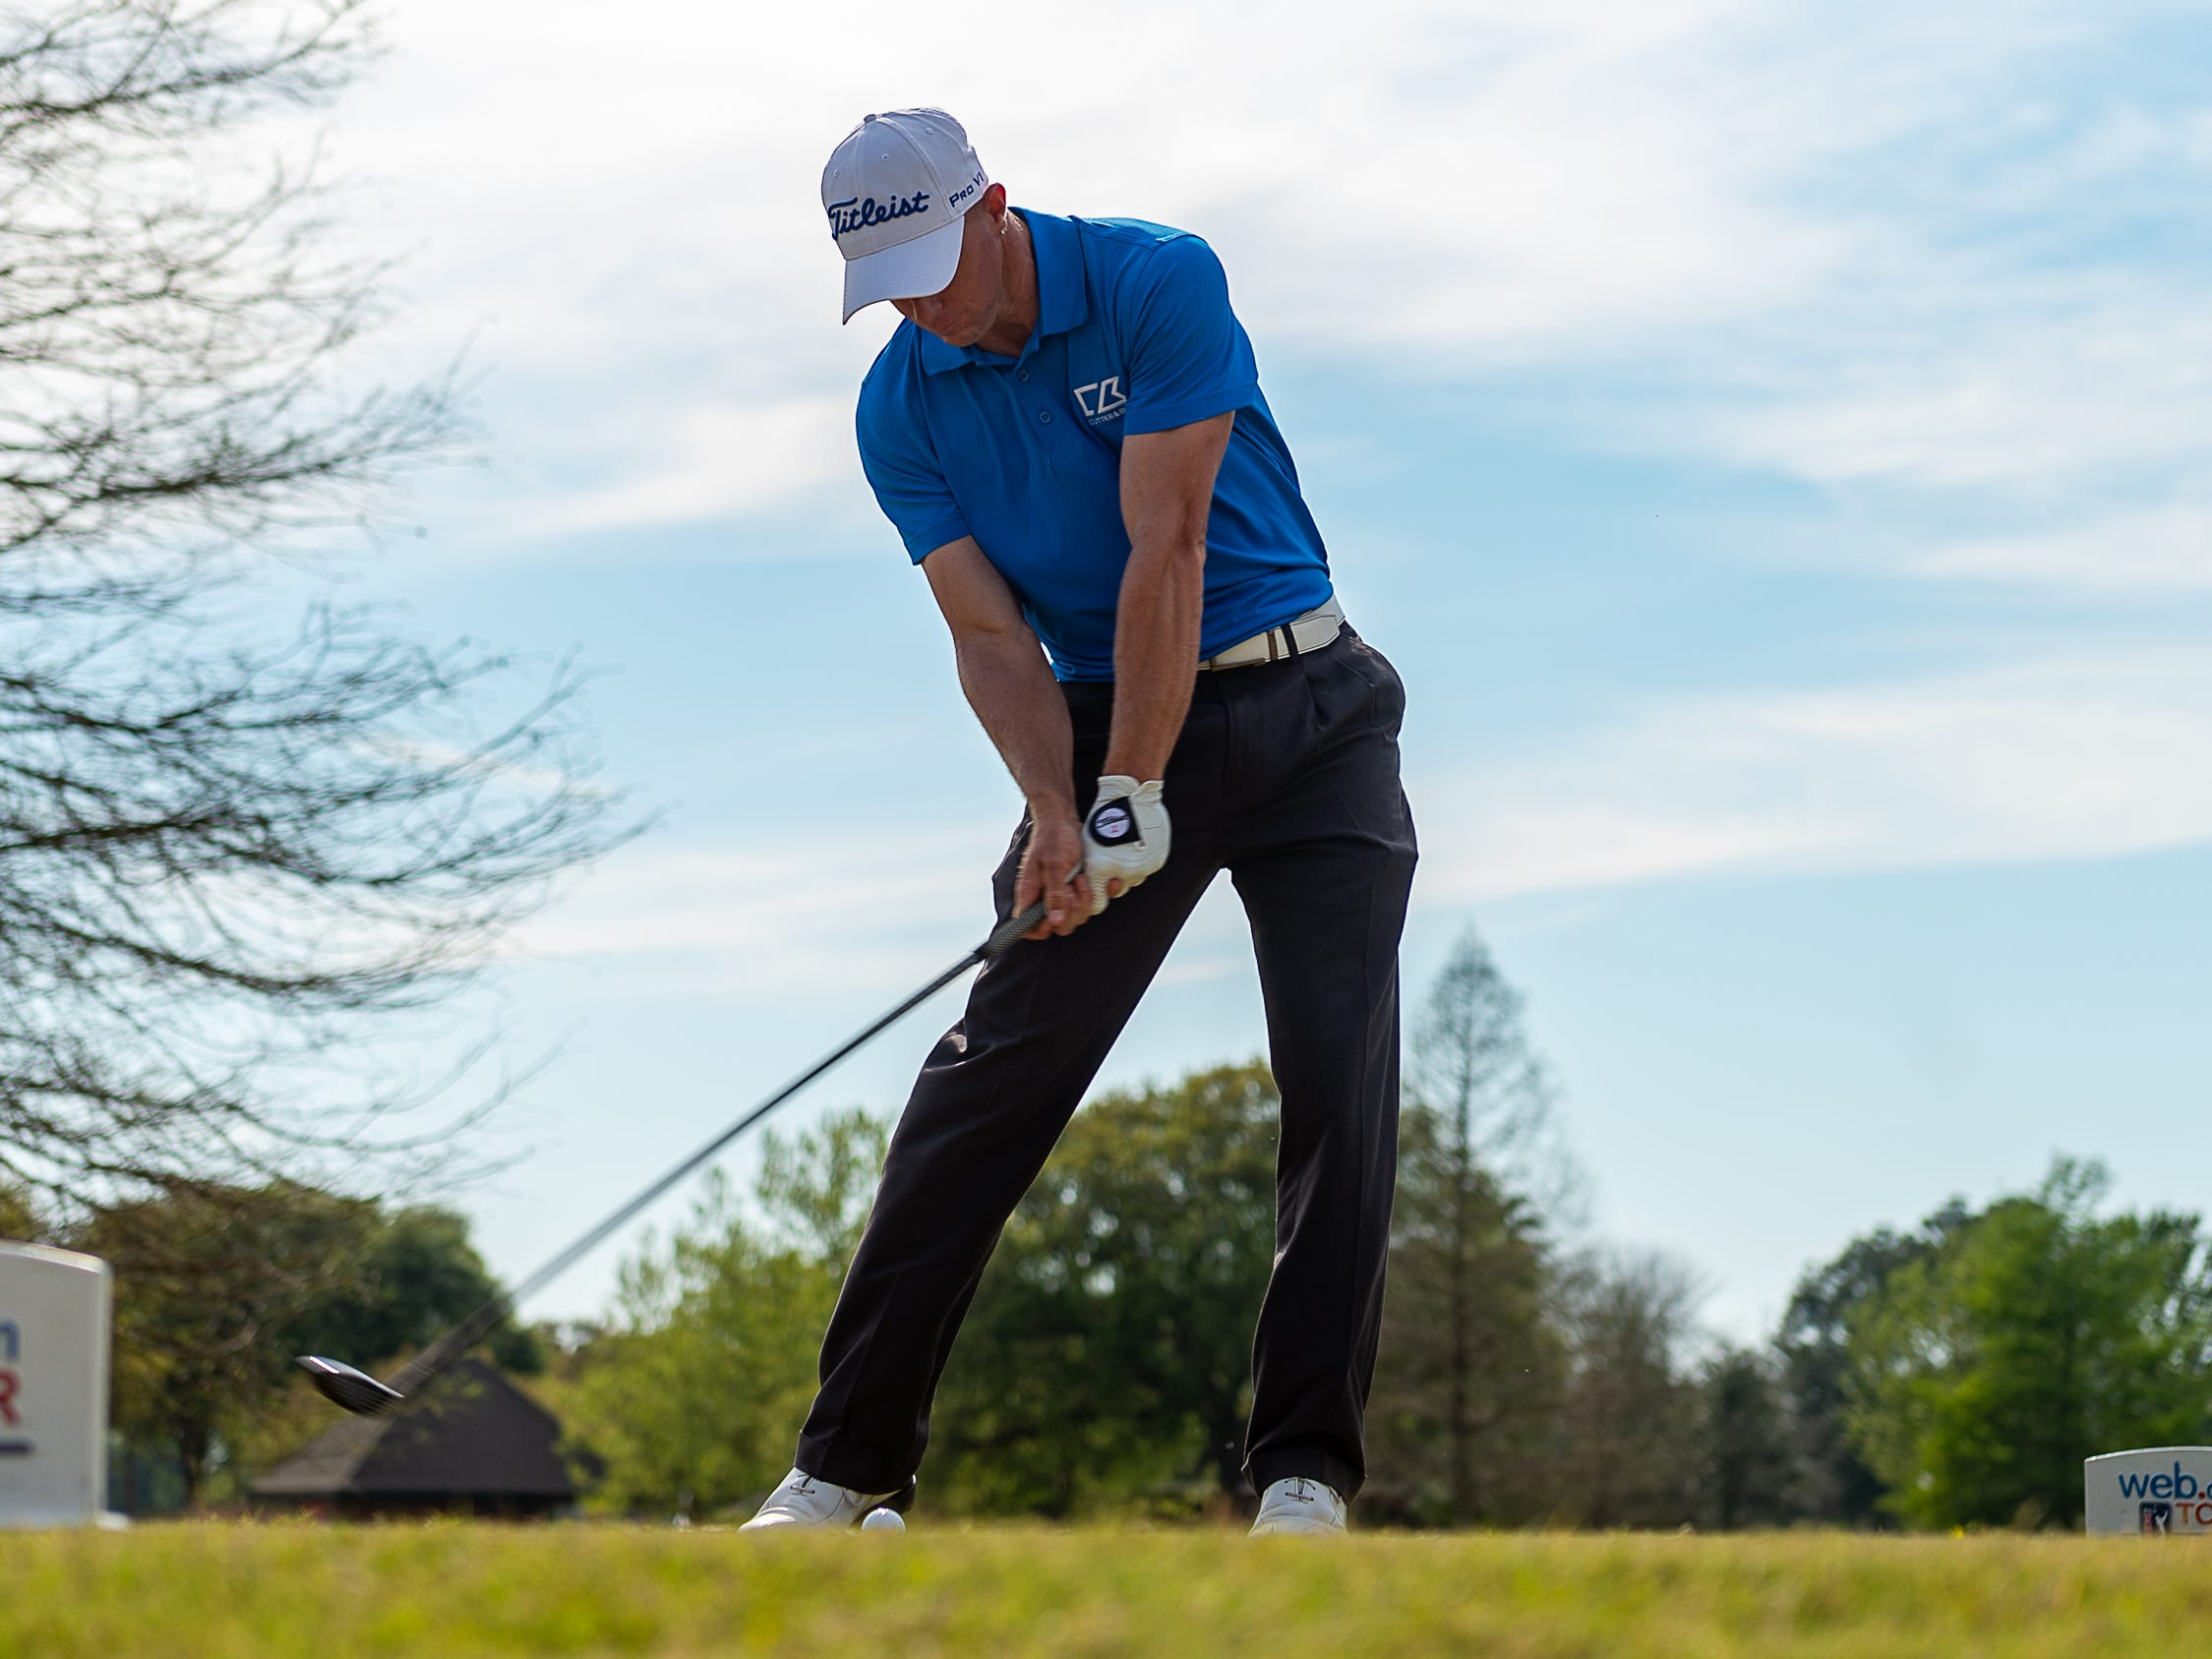 during the third round of The Web.com Tour in Lafayette for the 2019 Chitimacha Louisiana Open at Le Triomphe. Saturday, March 23, 2019.